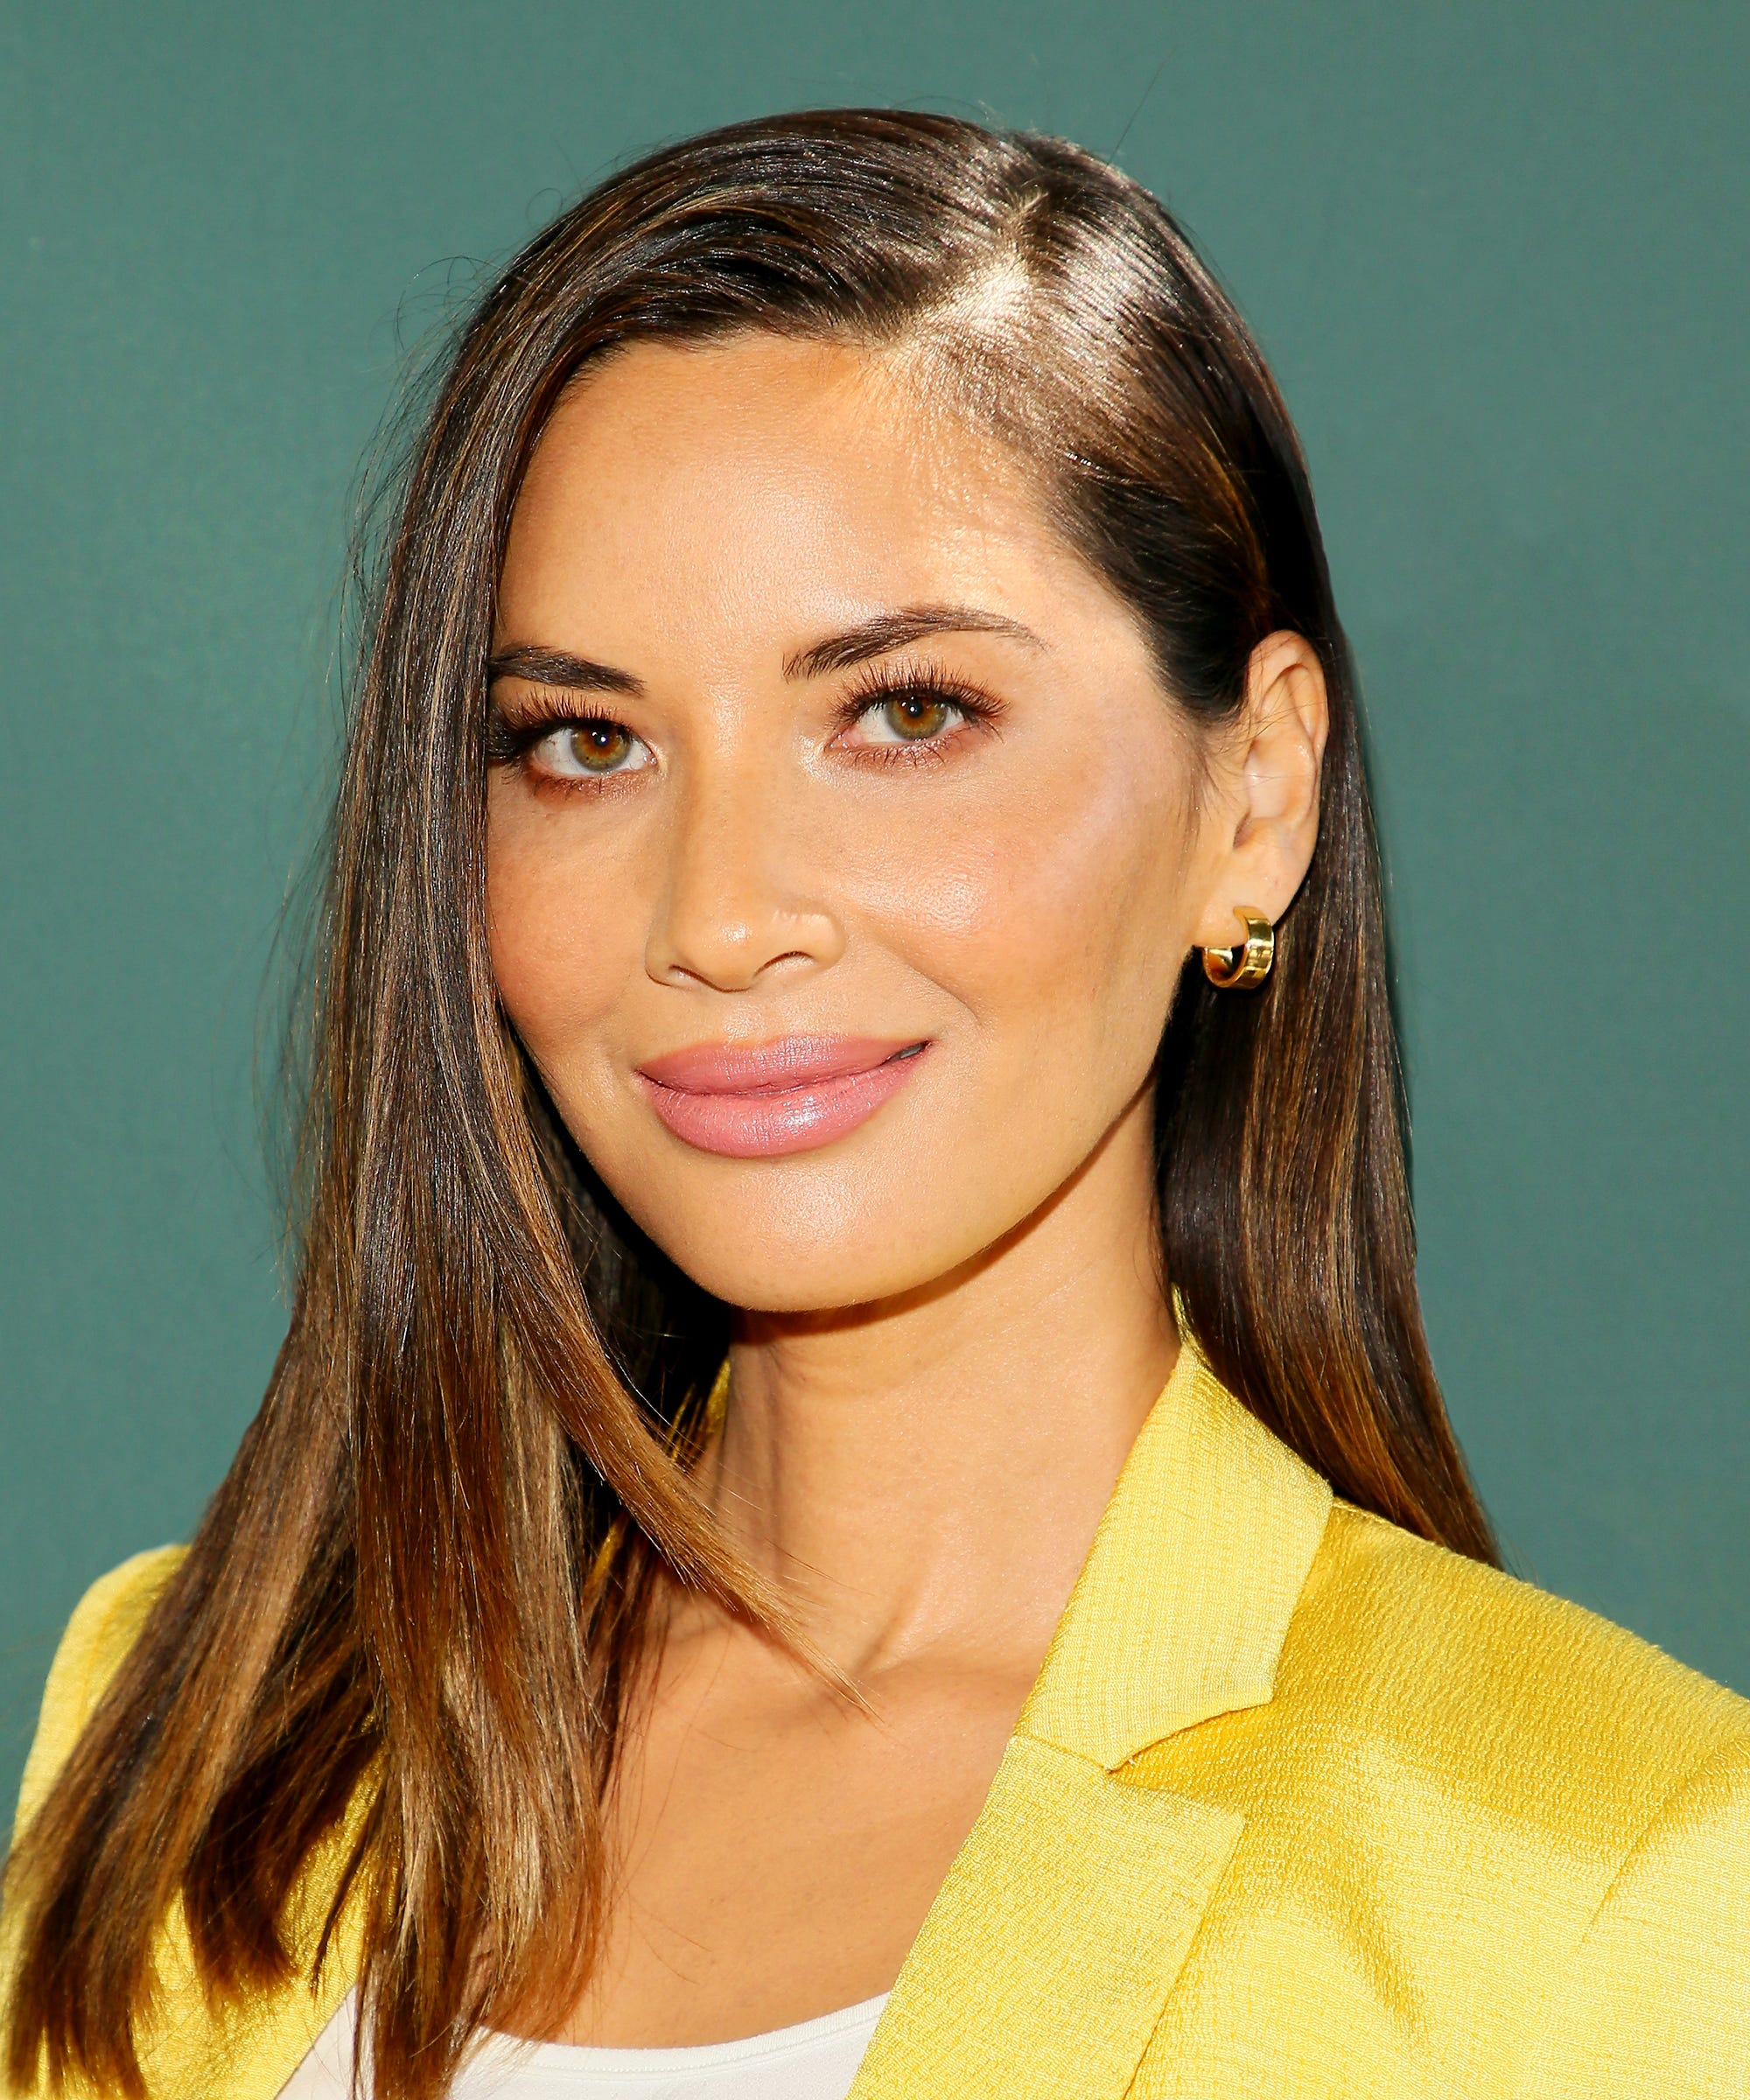 Olivia Munn Shuts Down Rumors About Her